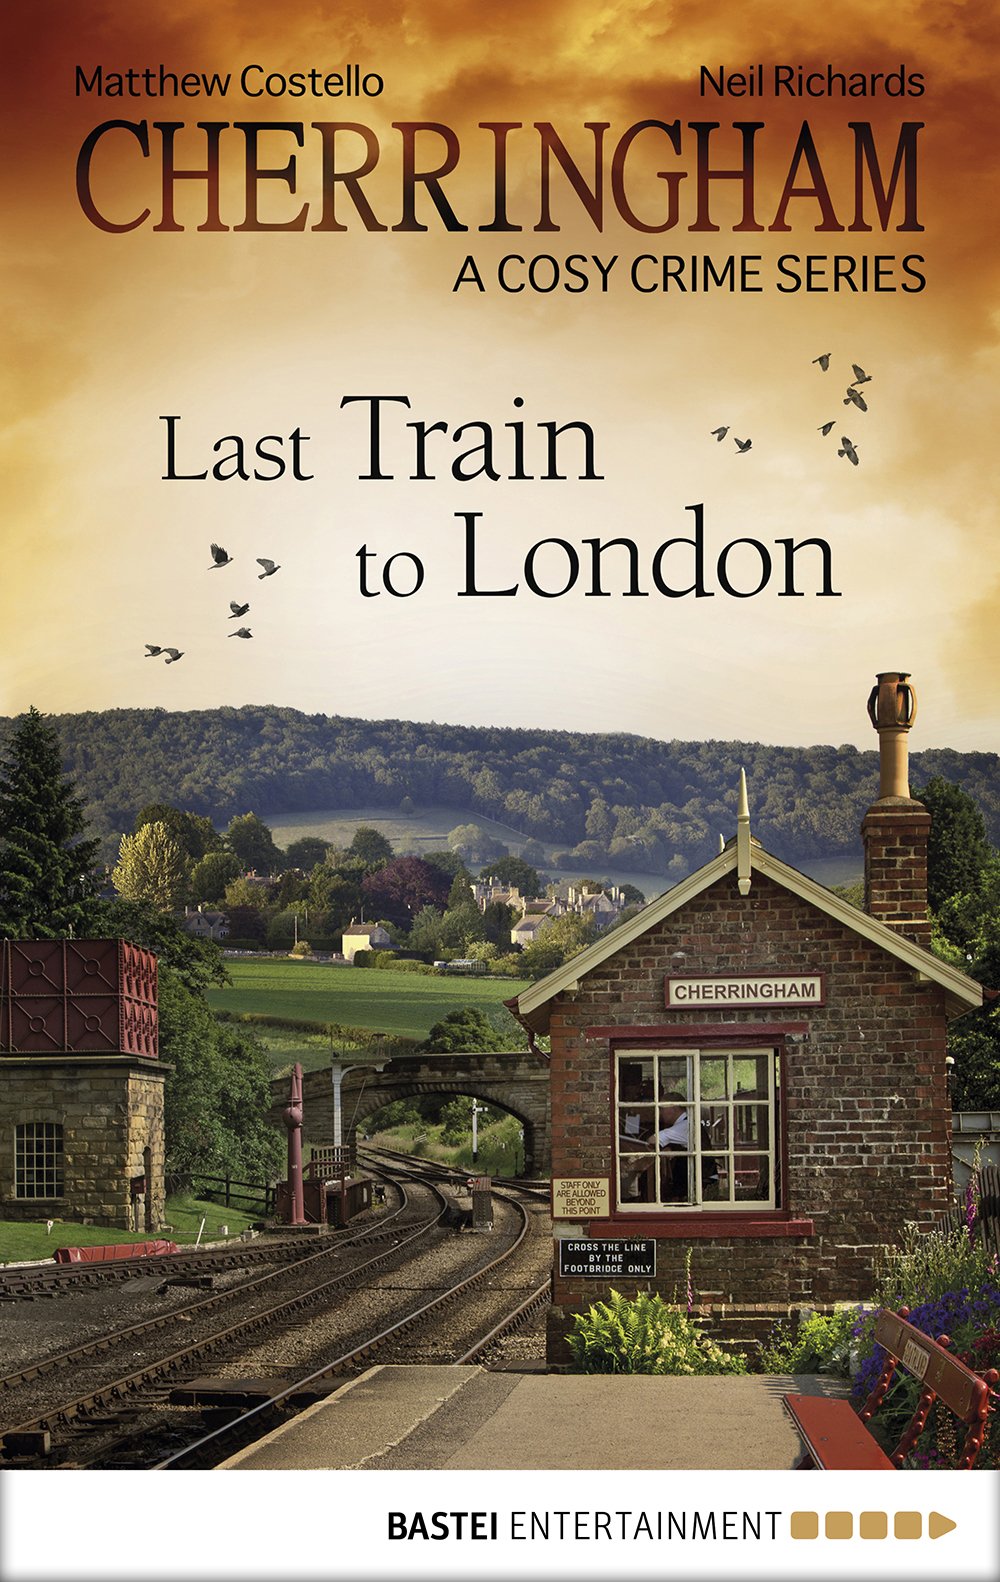 Cherringham--Last Train to London (2015)